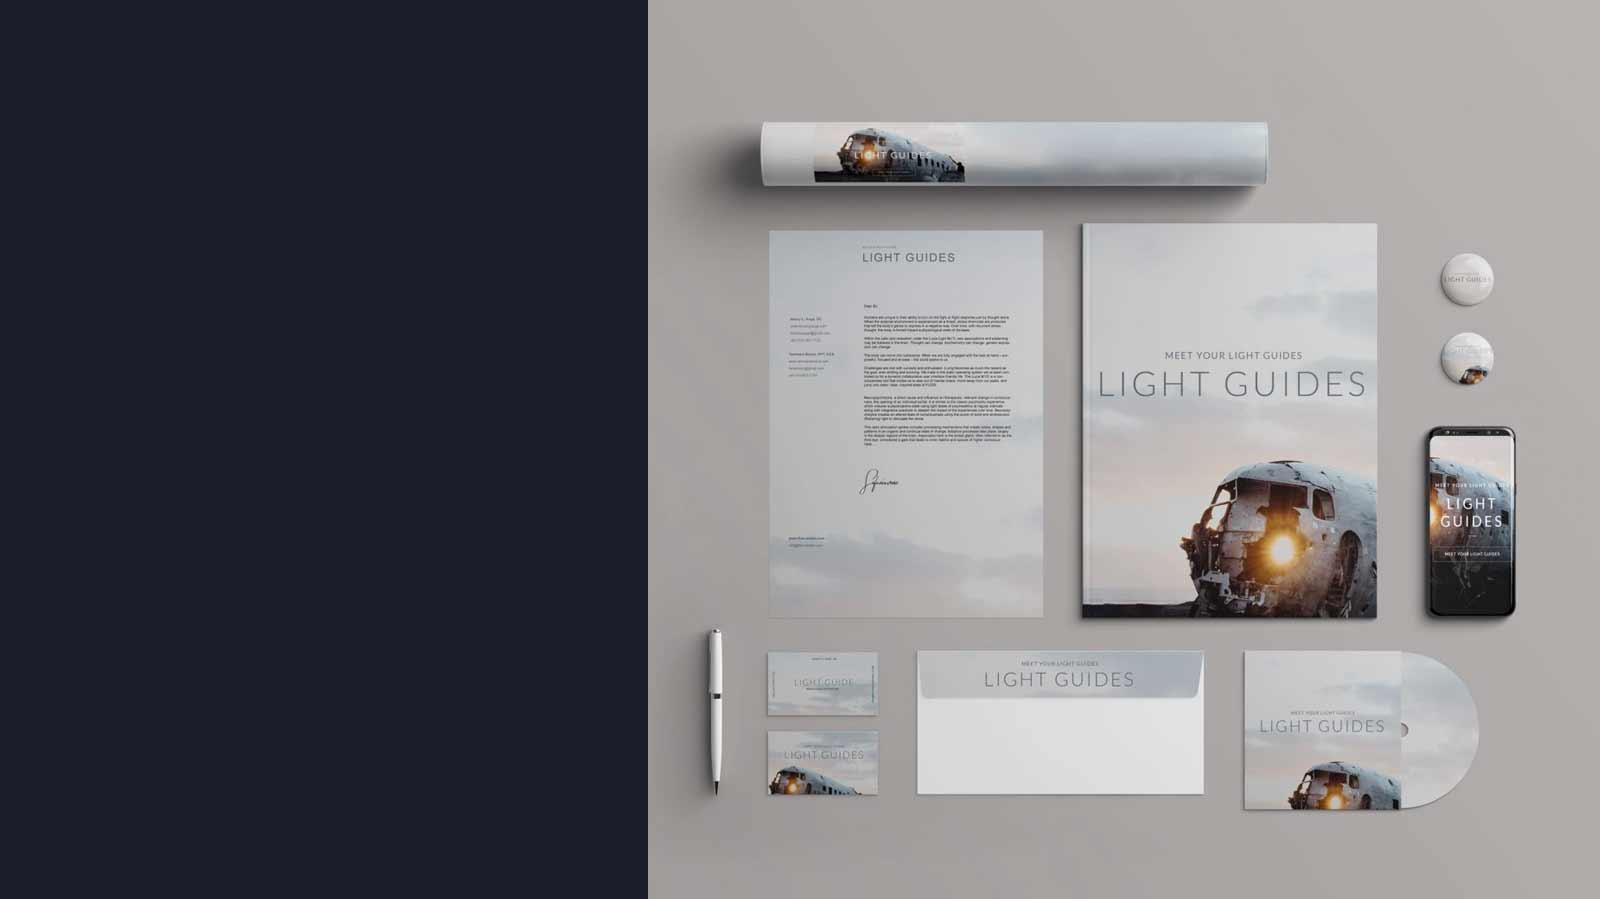 Brand Design Presentated On Printed Material